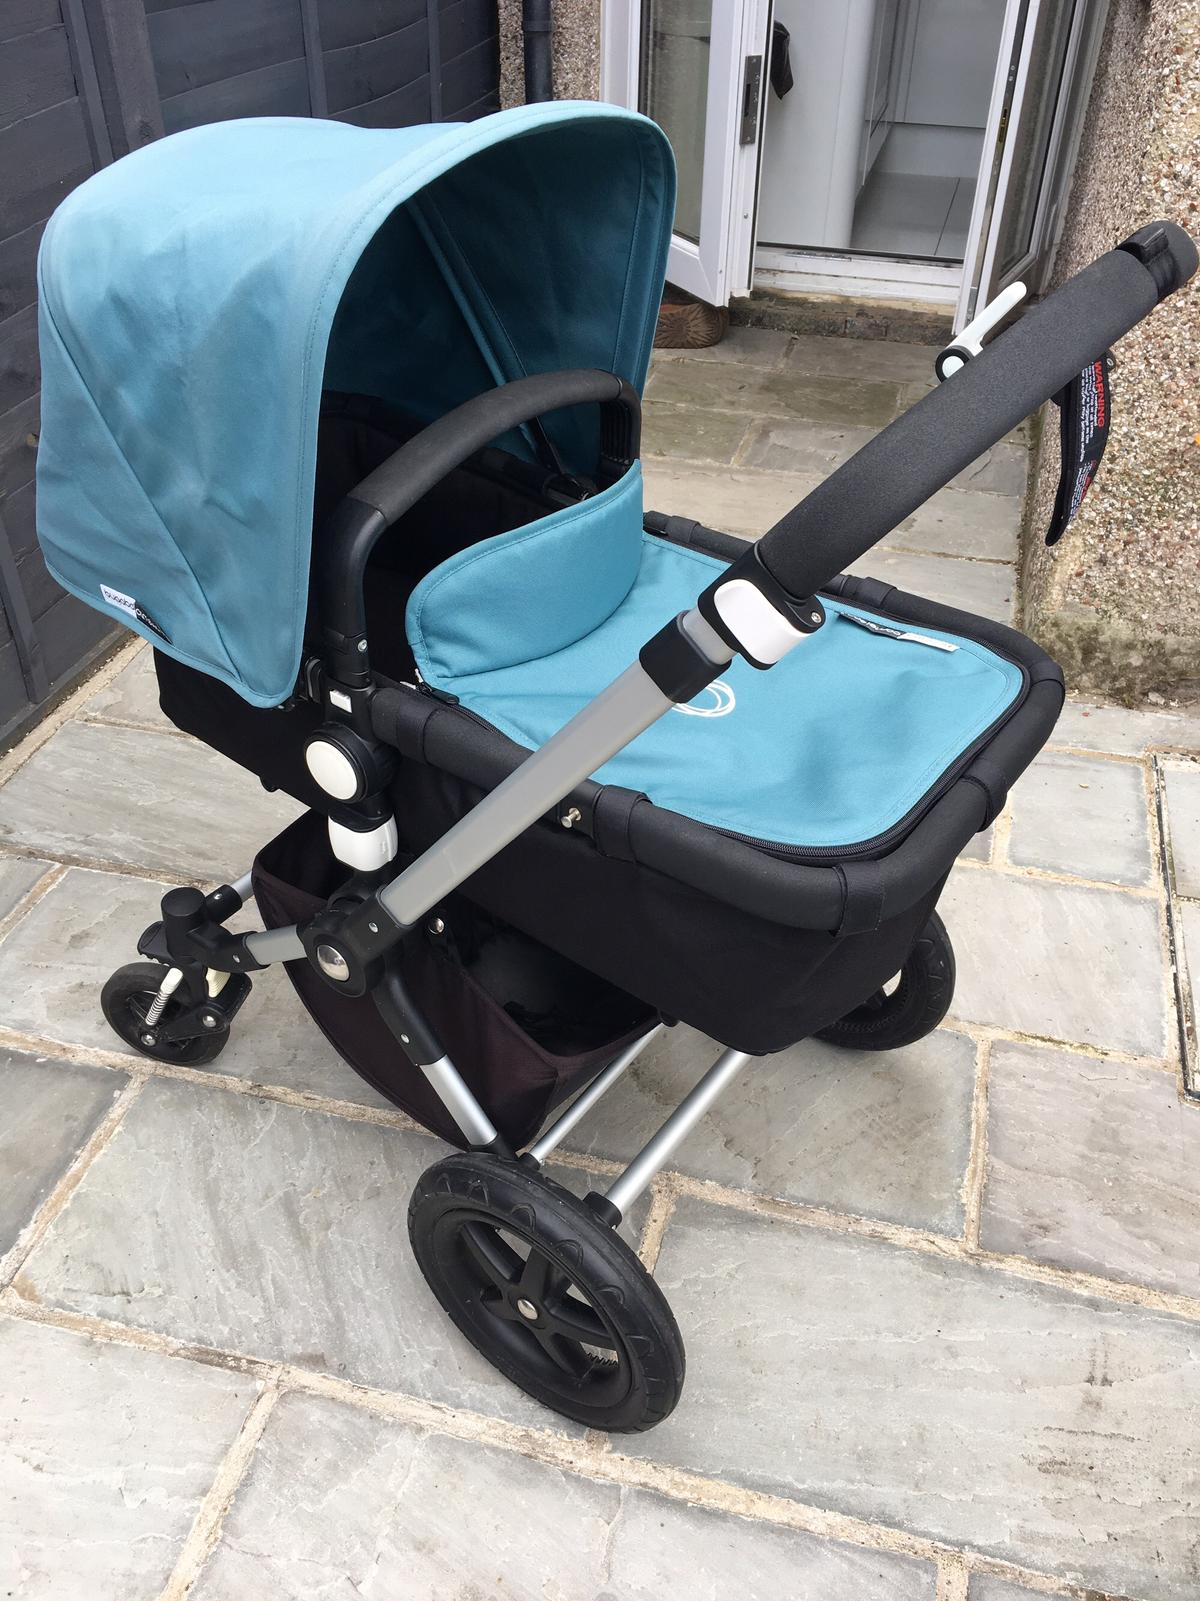 Bugaboo Cameleon 3 Maximum Weight Bugaboo Cameleon 3 In Petrol Blue In Br6 Orpington For